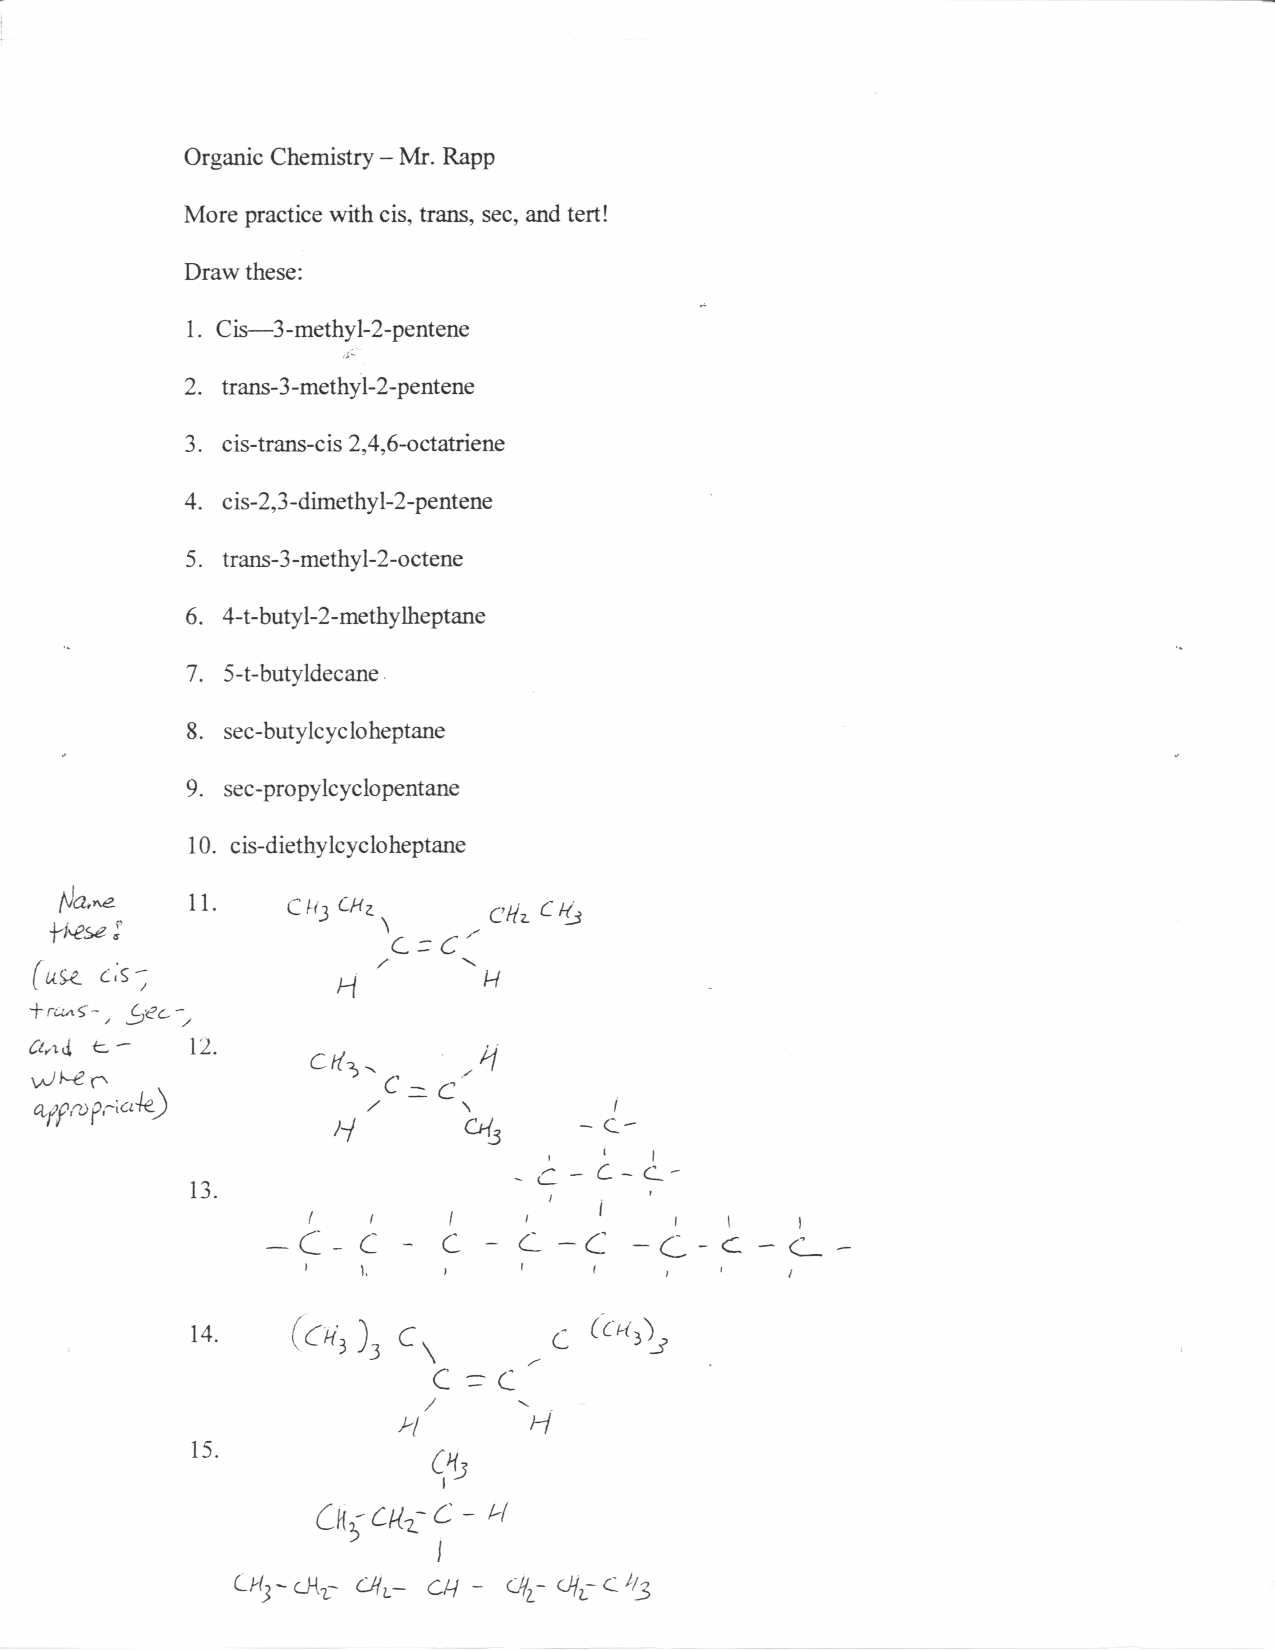 worksheet Introduction To Chemistry Worksheet organic chemistry cis trans sec